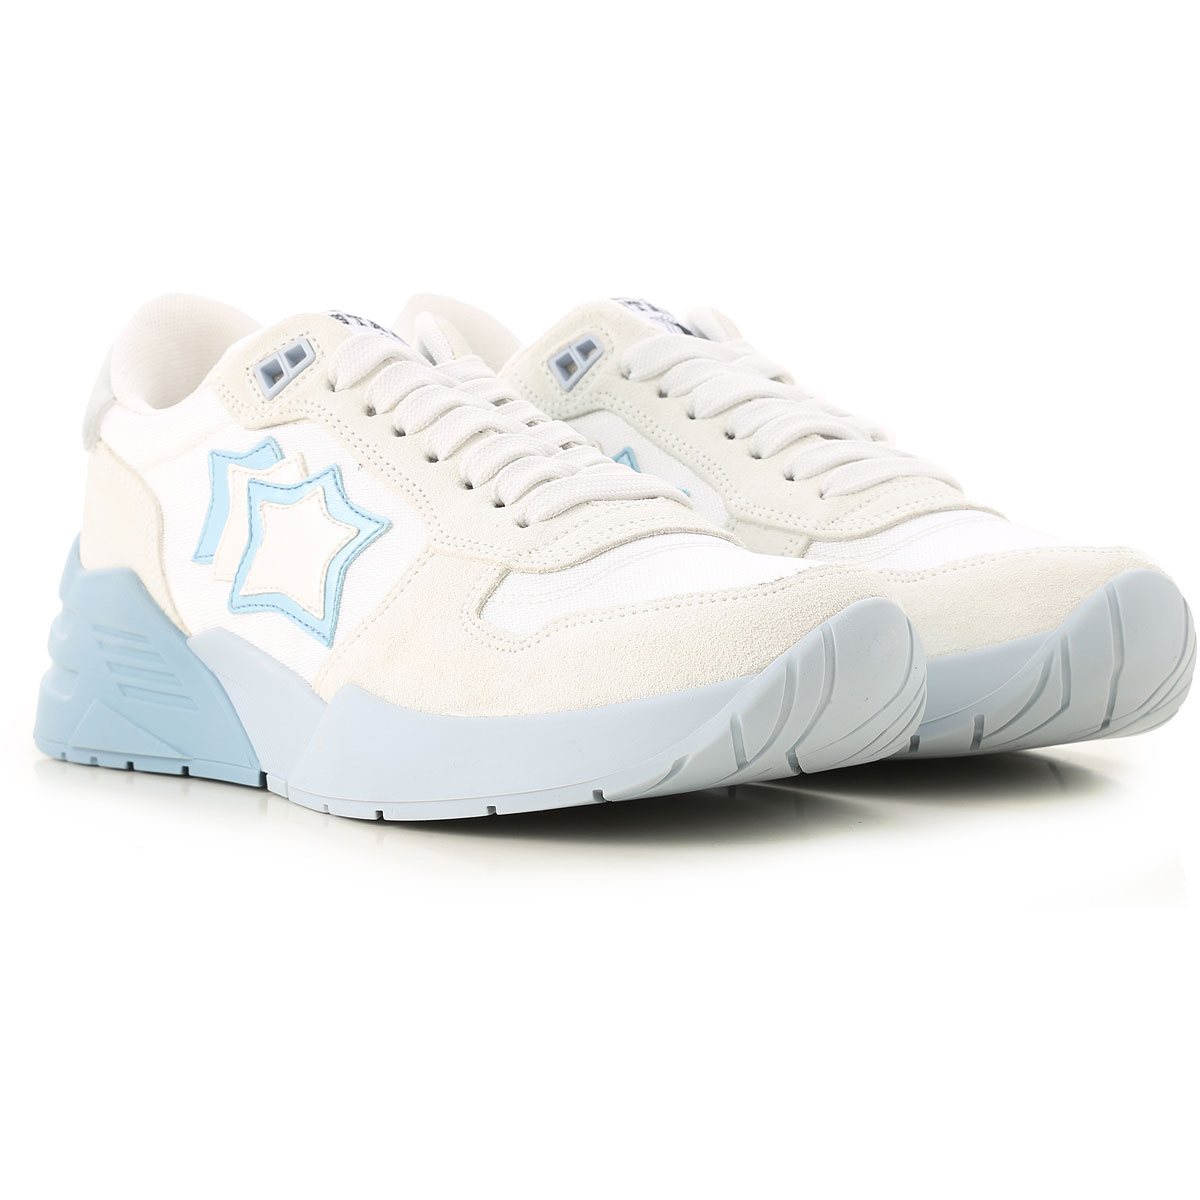 Atlantic Stars Sneakers for Women On Sale in Outlet, White, suede, 2019, 10 6 7 8